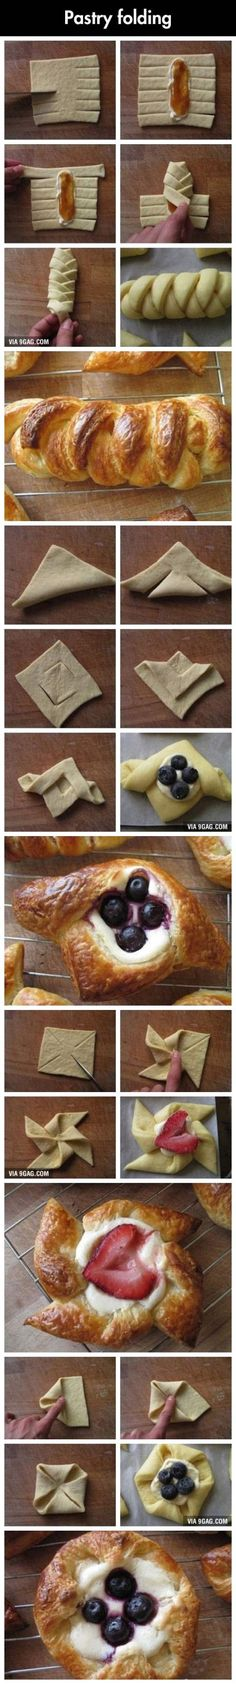 9GAG - Awesome Dessert Designs